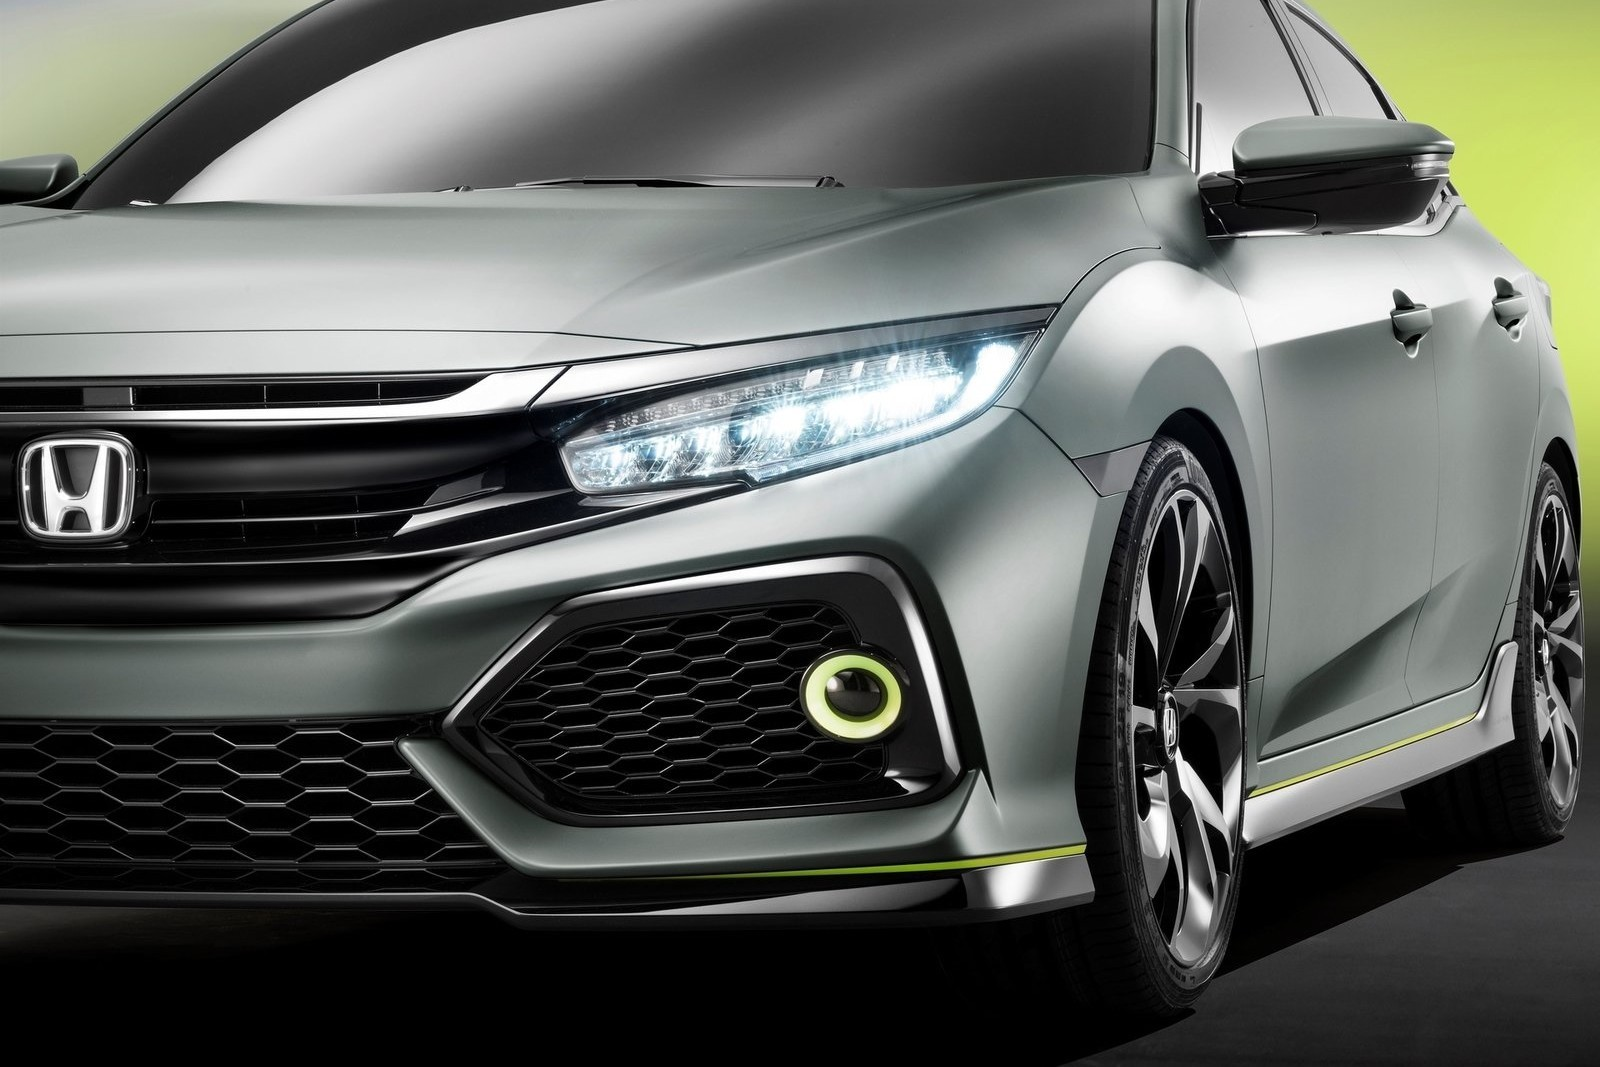 2017 honda civic hatchback prototype for Honda civic wagon 2017